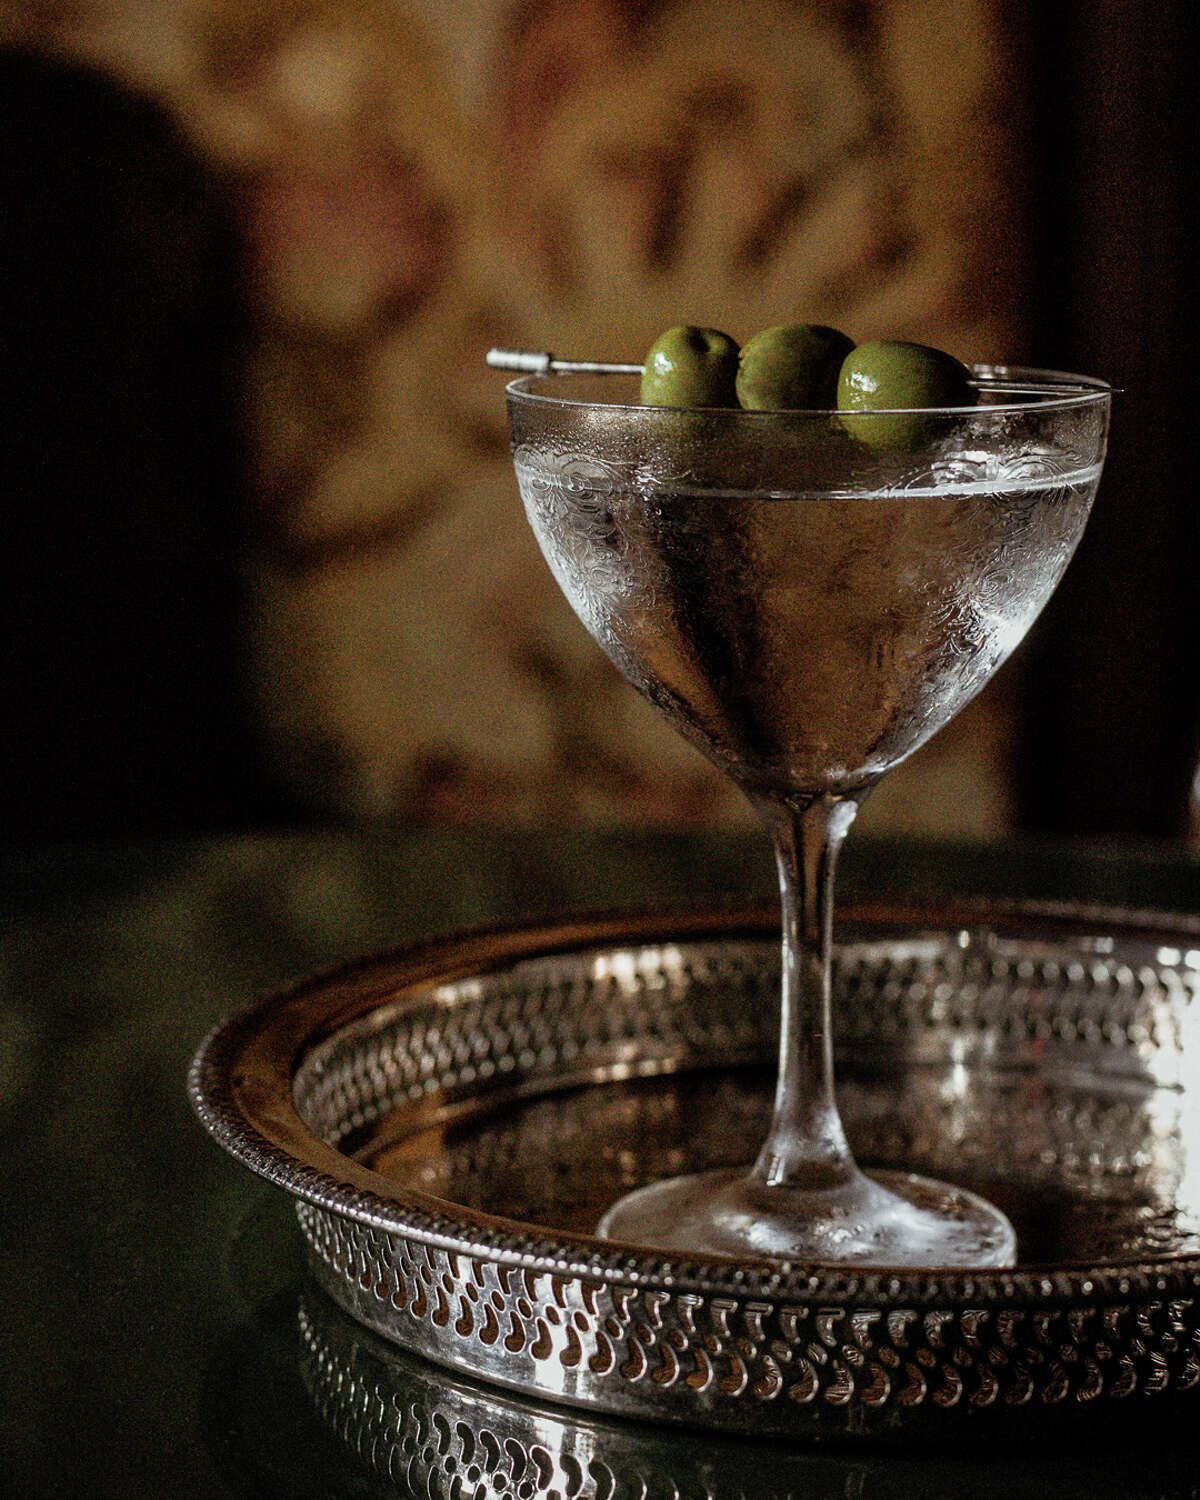 The elements to a martini are simple - vodka or gin, vermouth, garnish - but the cocktail itself is far from simple. A mixologist from Hudson's Maker Hotel shares tips for making James Bond-worthy martinis at home.